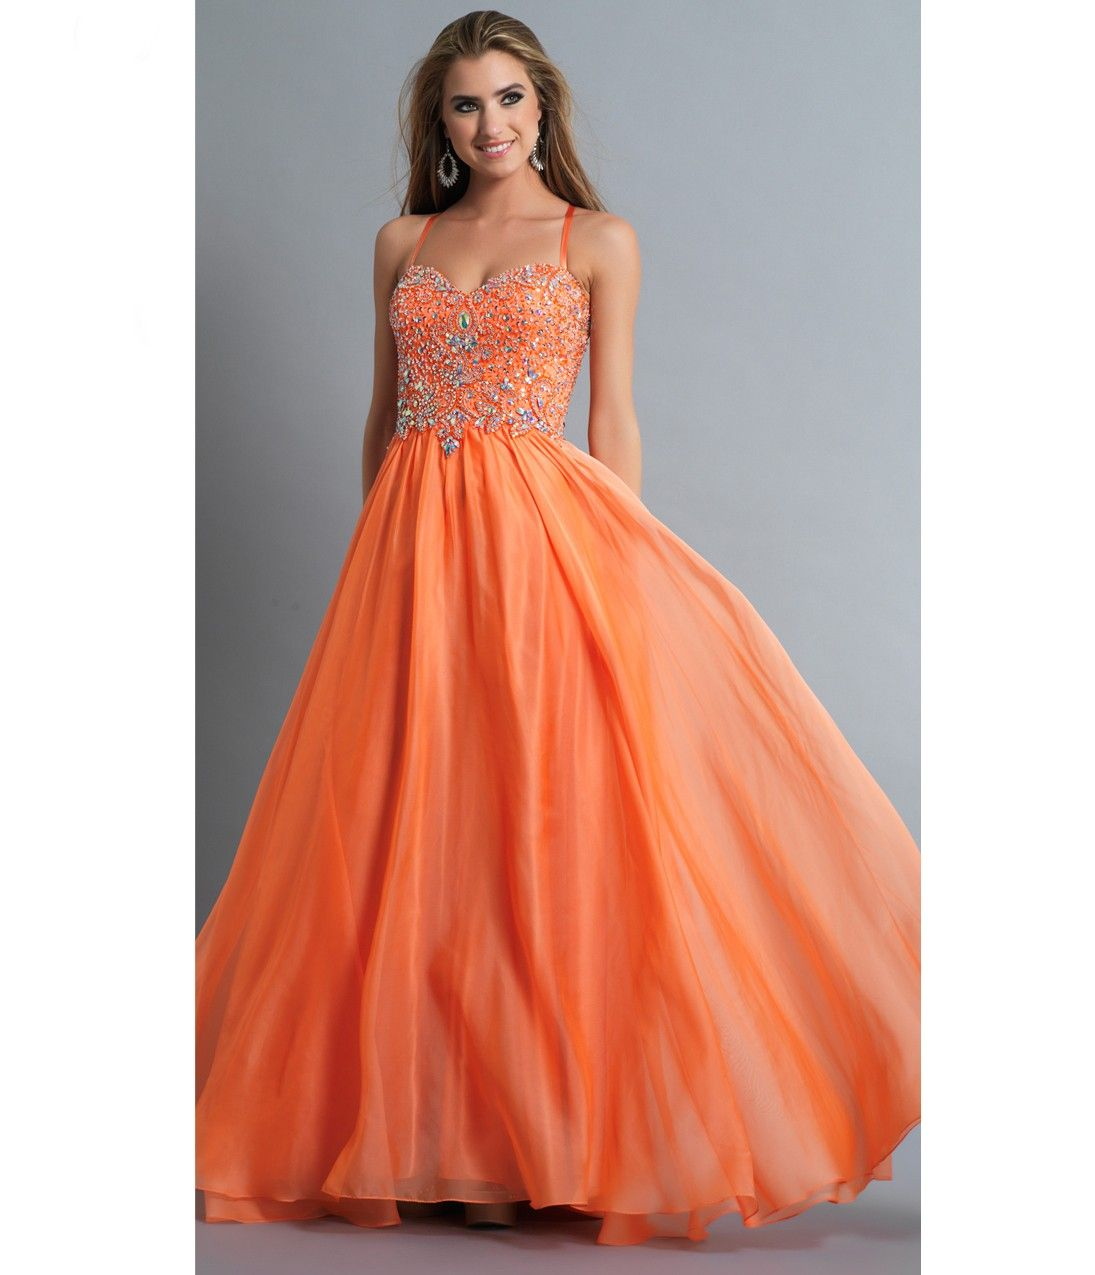 Orange Embellished Spaghetti Stap #Prom Gown | Neon Brights ...